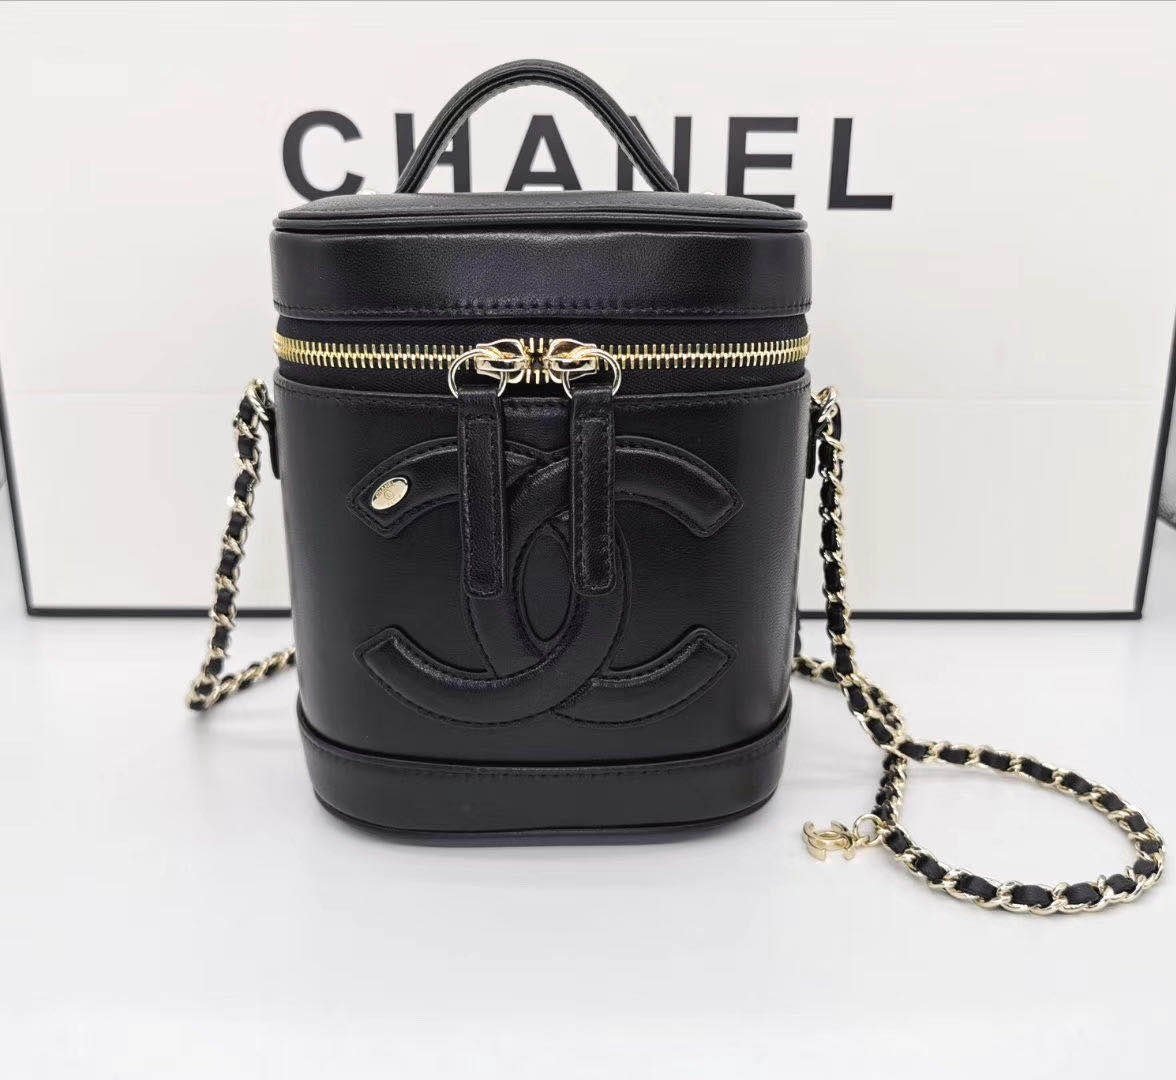 CHANEL vanity case Gold-Tone Metal AS1336 black